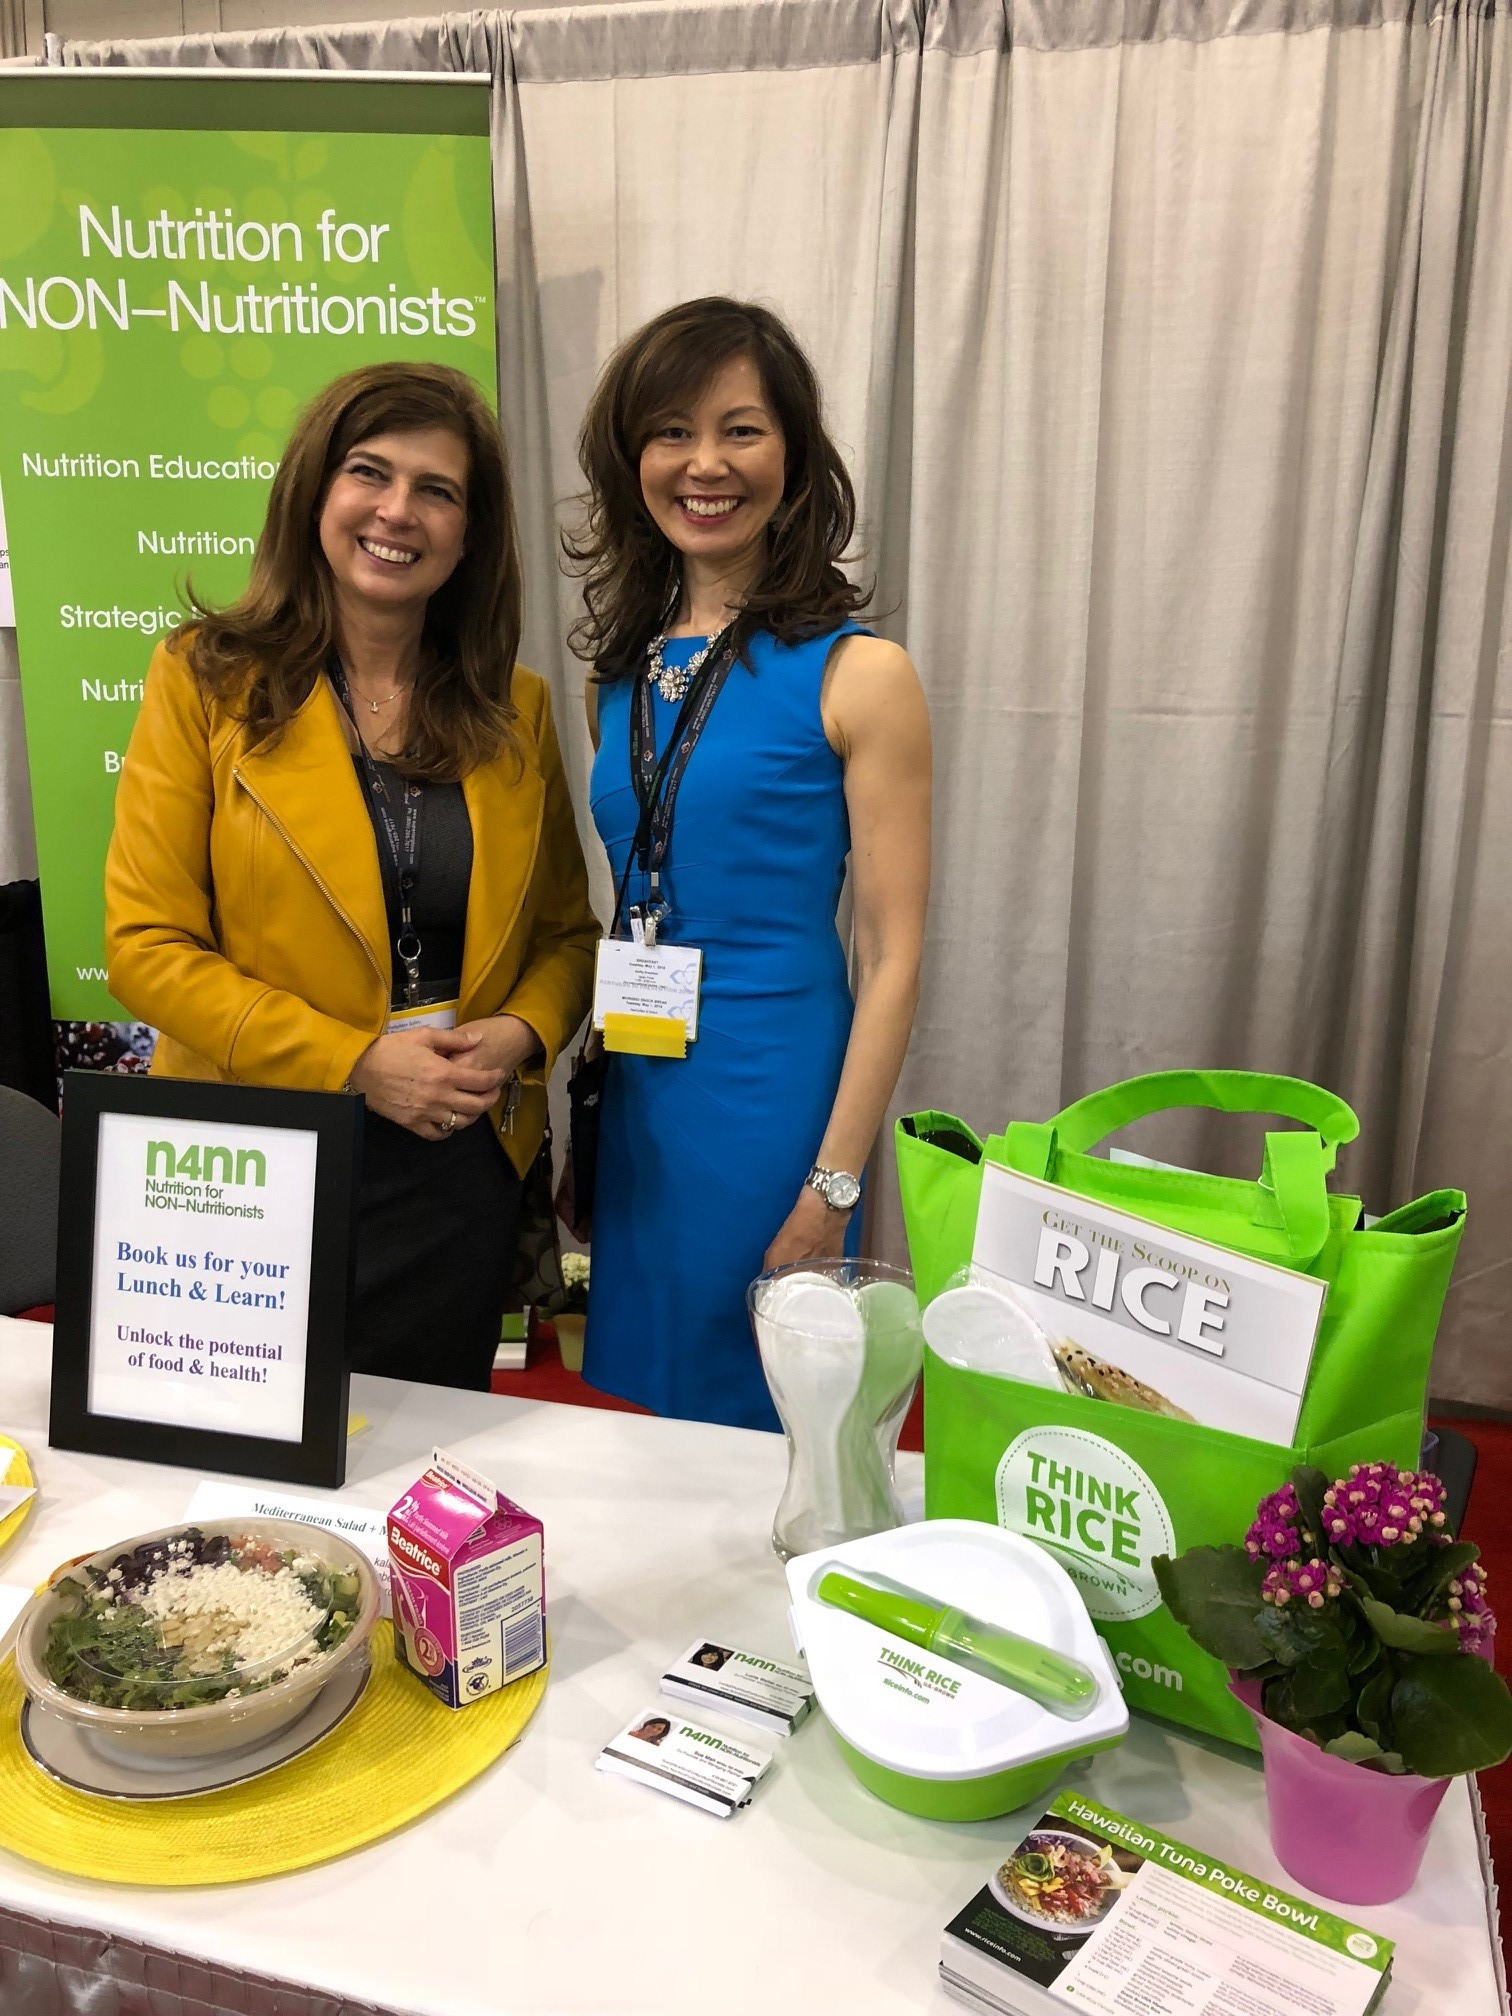 Trade Show with Nutritionists